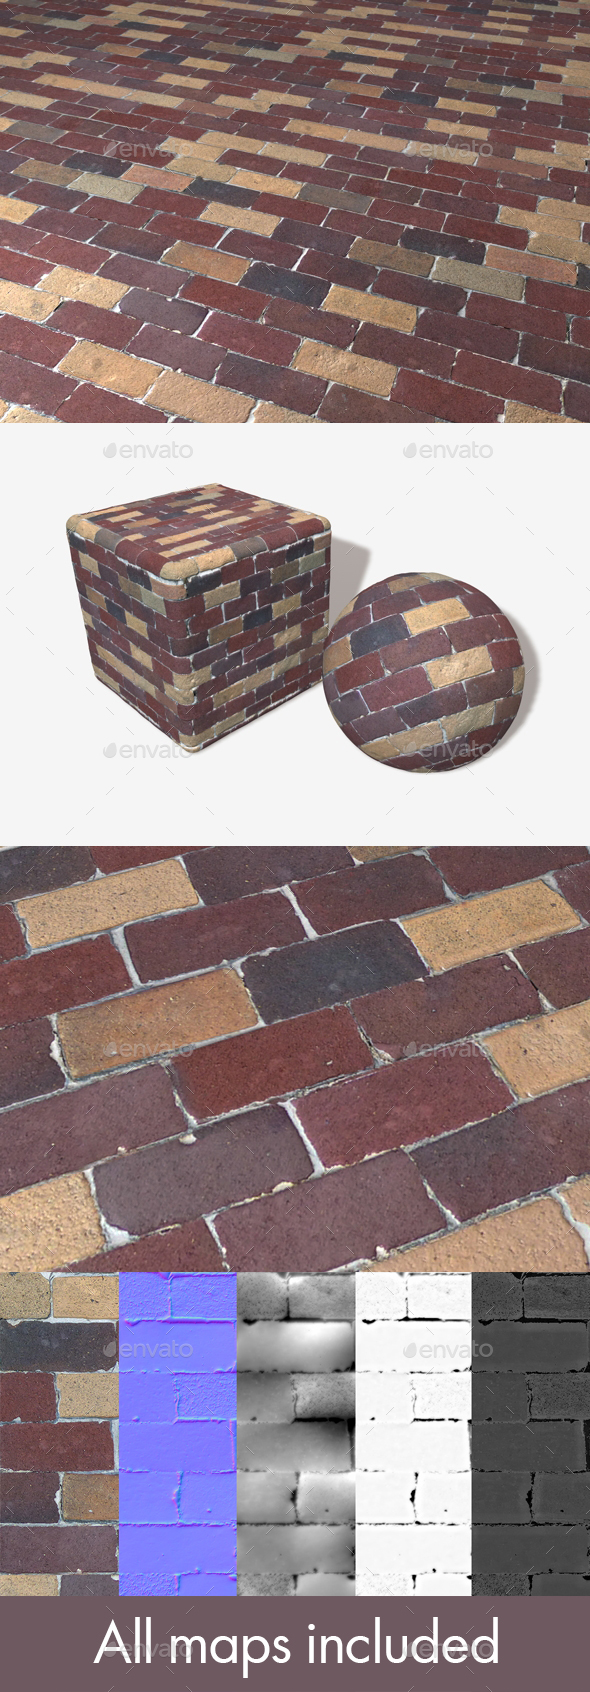 Colourful Bricks Seamless Texture - 3DOcean Item for Sale